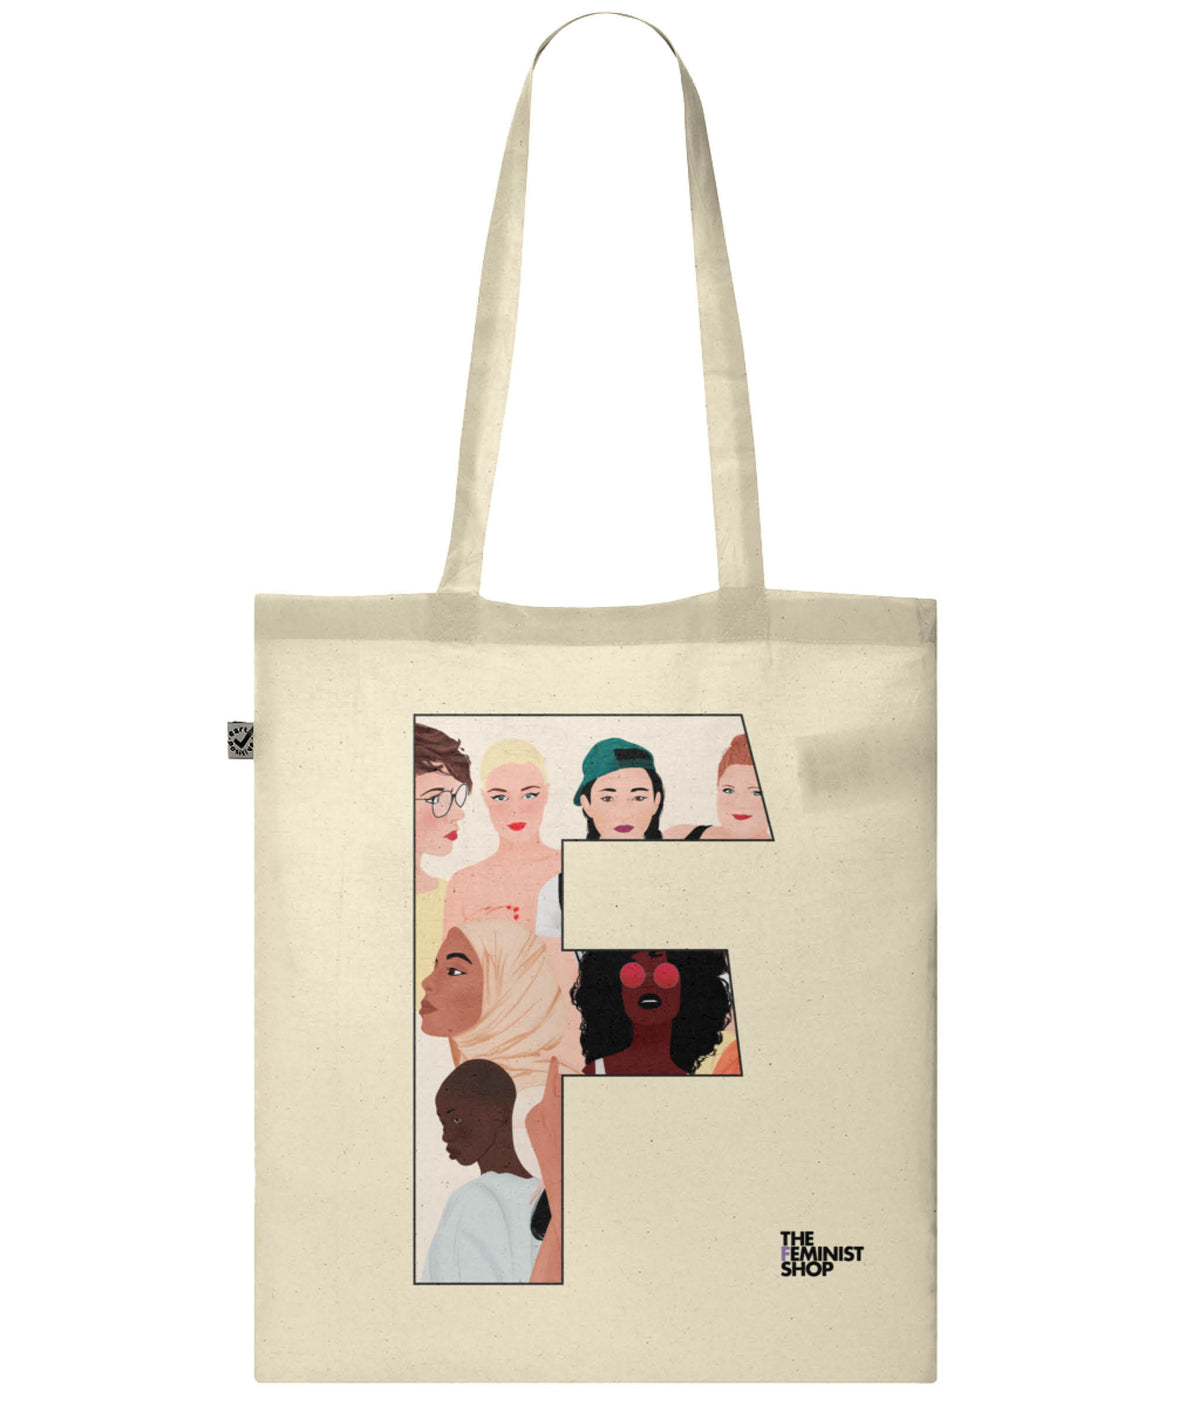 Organic Cotton Feminist Tote Bag - F by Carola Marin